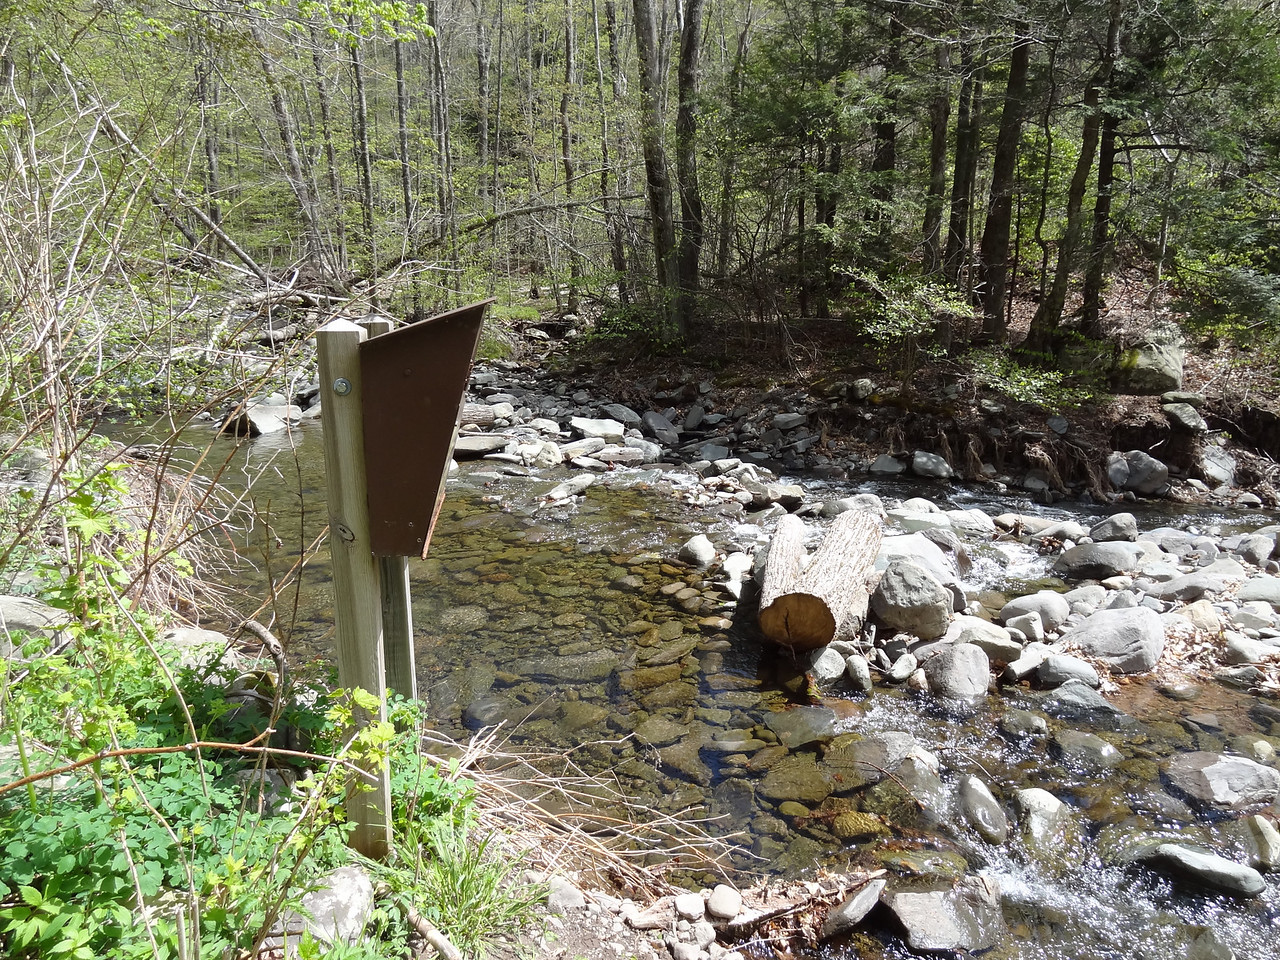 The registration kiosk required you to stand in the creek. Really DEC?!?!? I know the trail is washed out but can't you move the sign-in box?